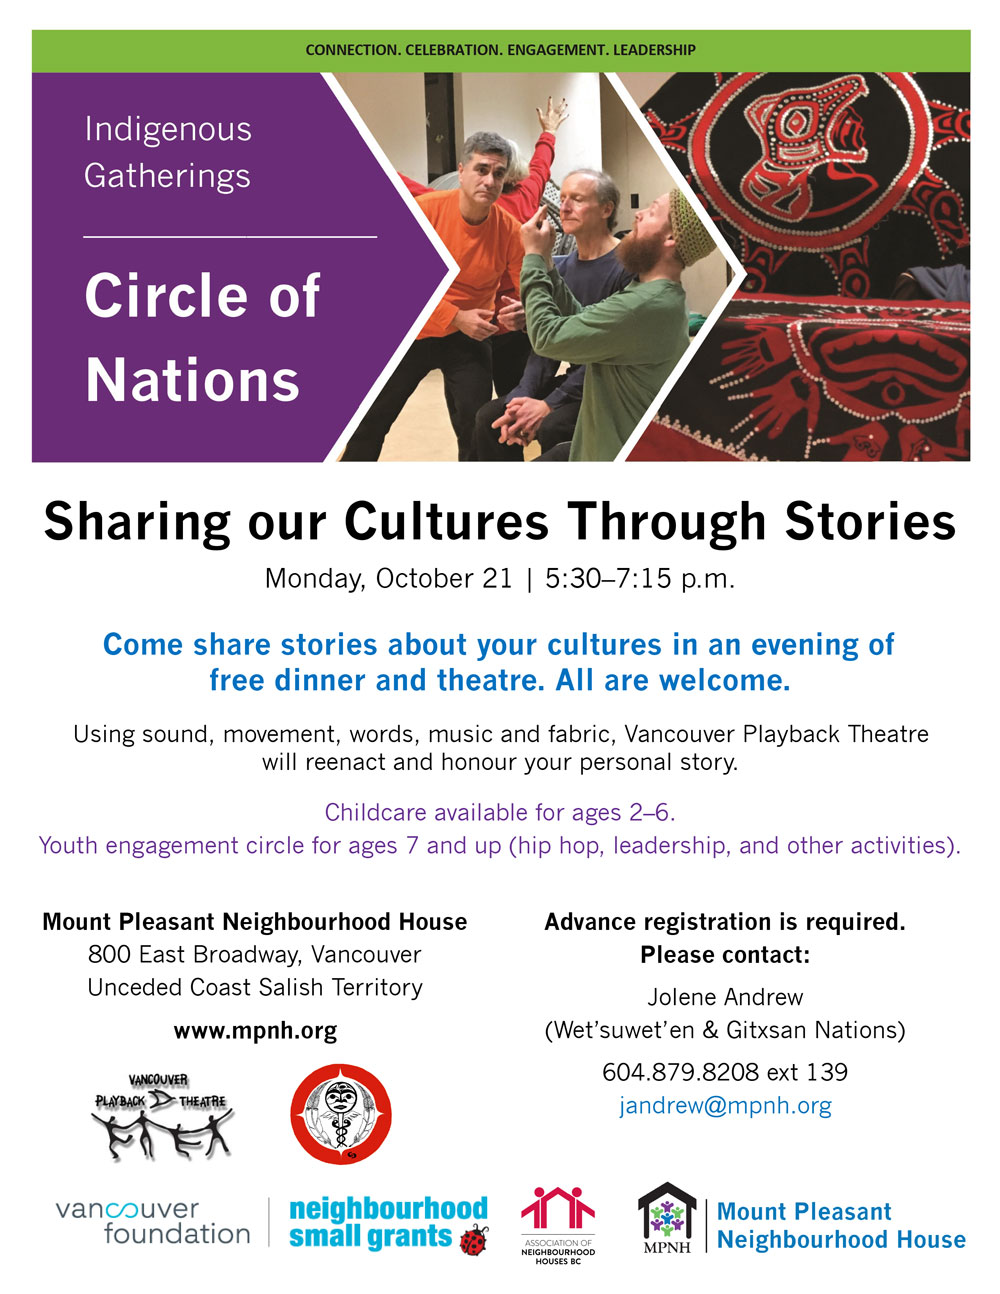 An image of the poster with event details, featuring a photo of people doing a dramatic reenactment, and a photo of Indigenous regalia